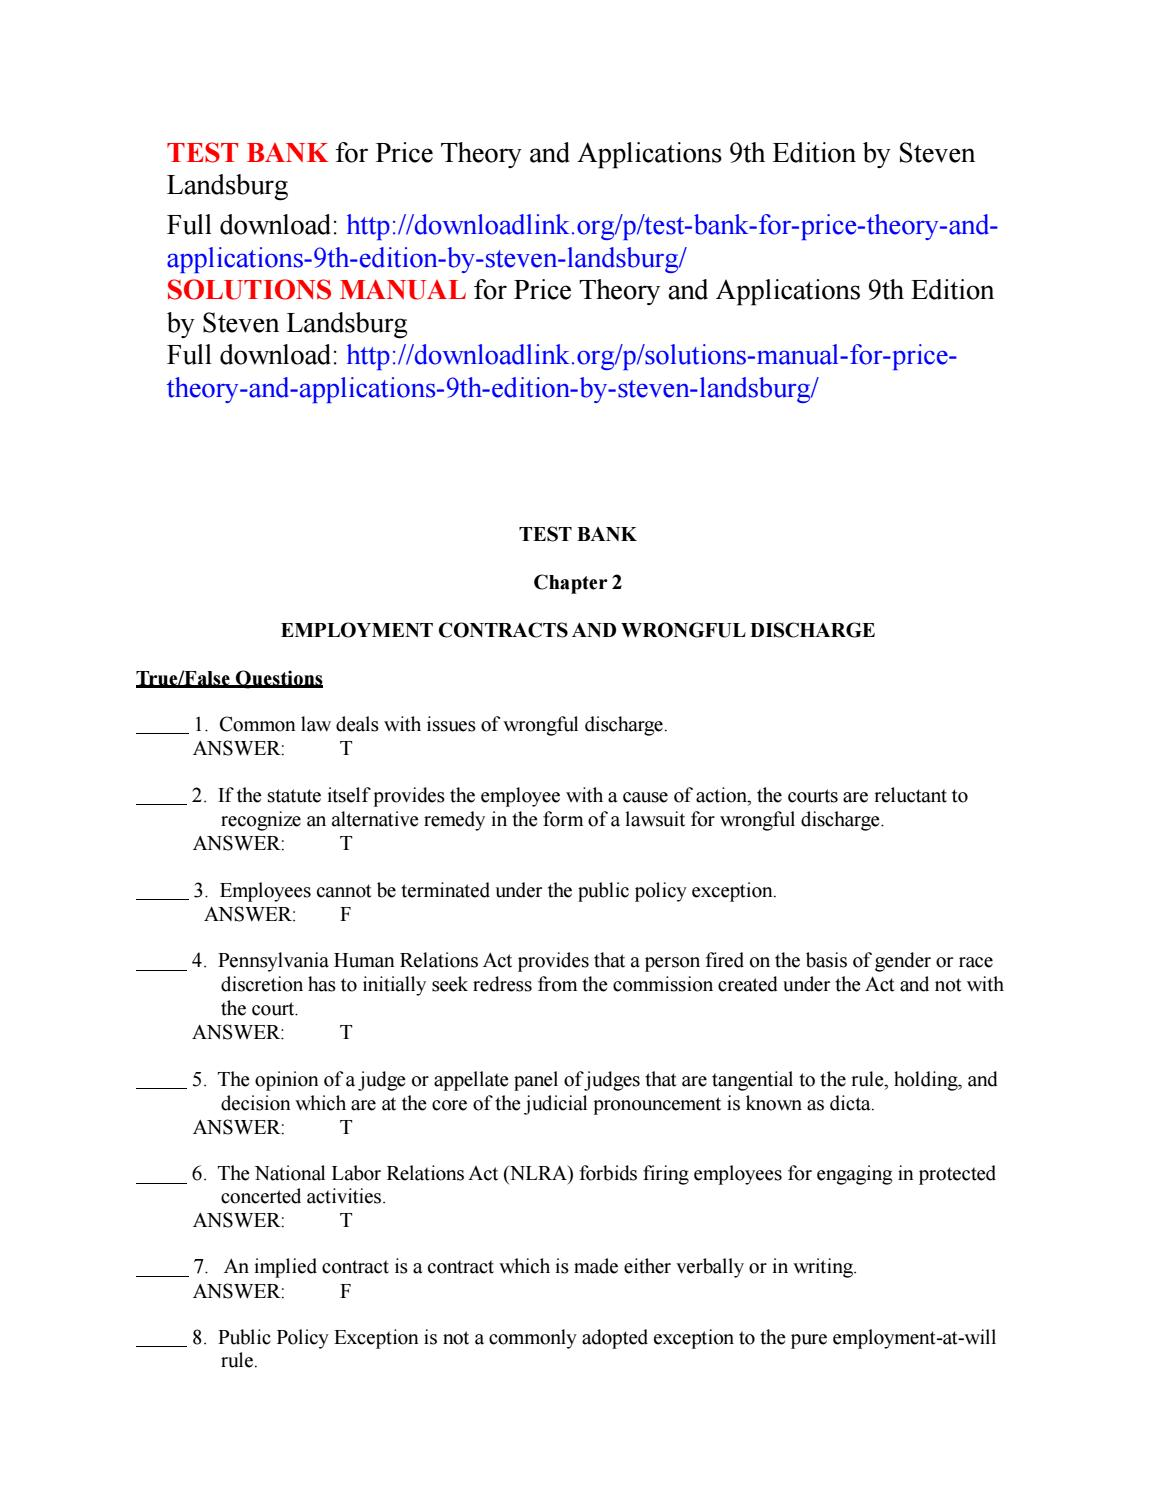 price theory and applications landsburg steven e 2014